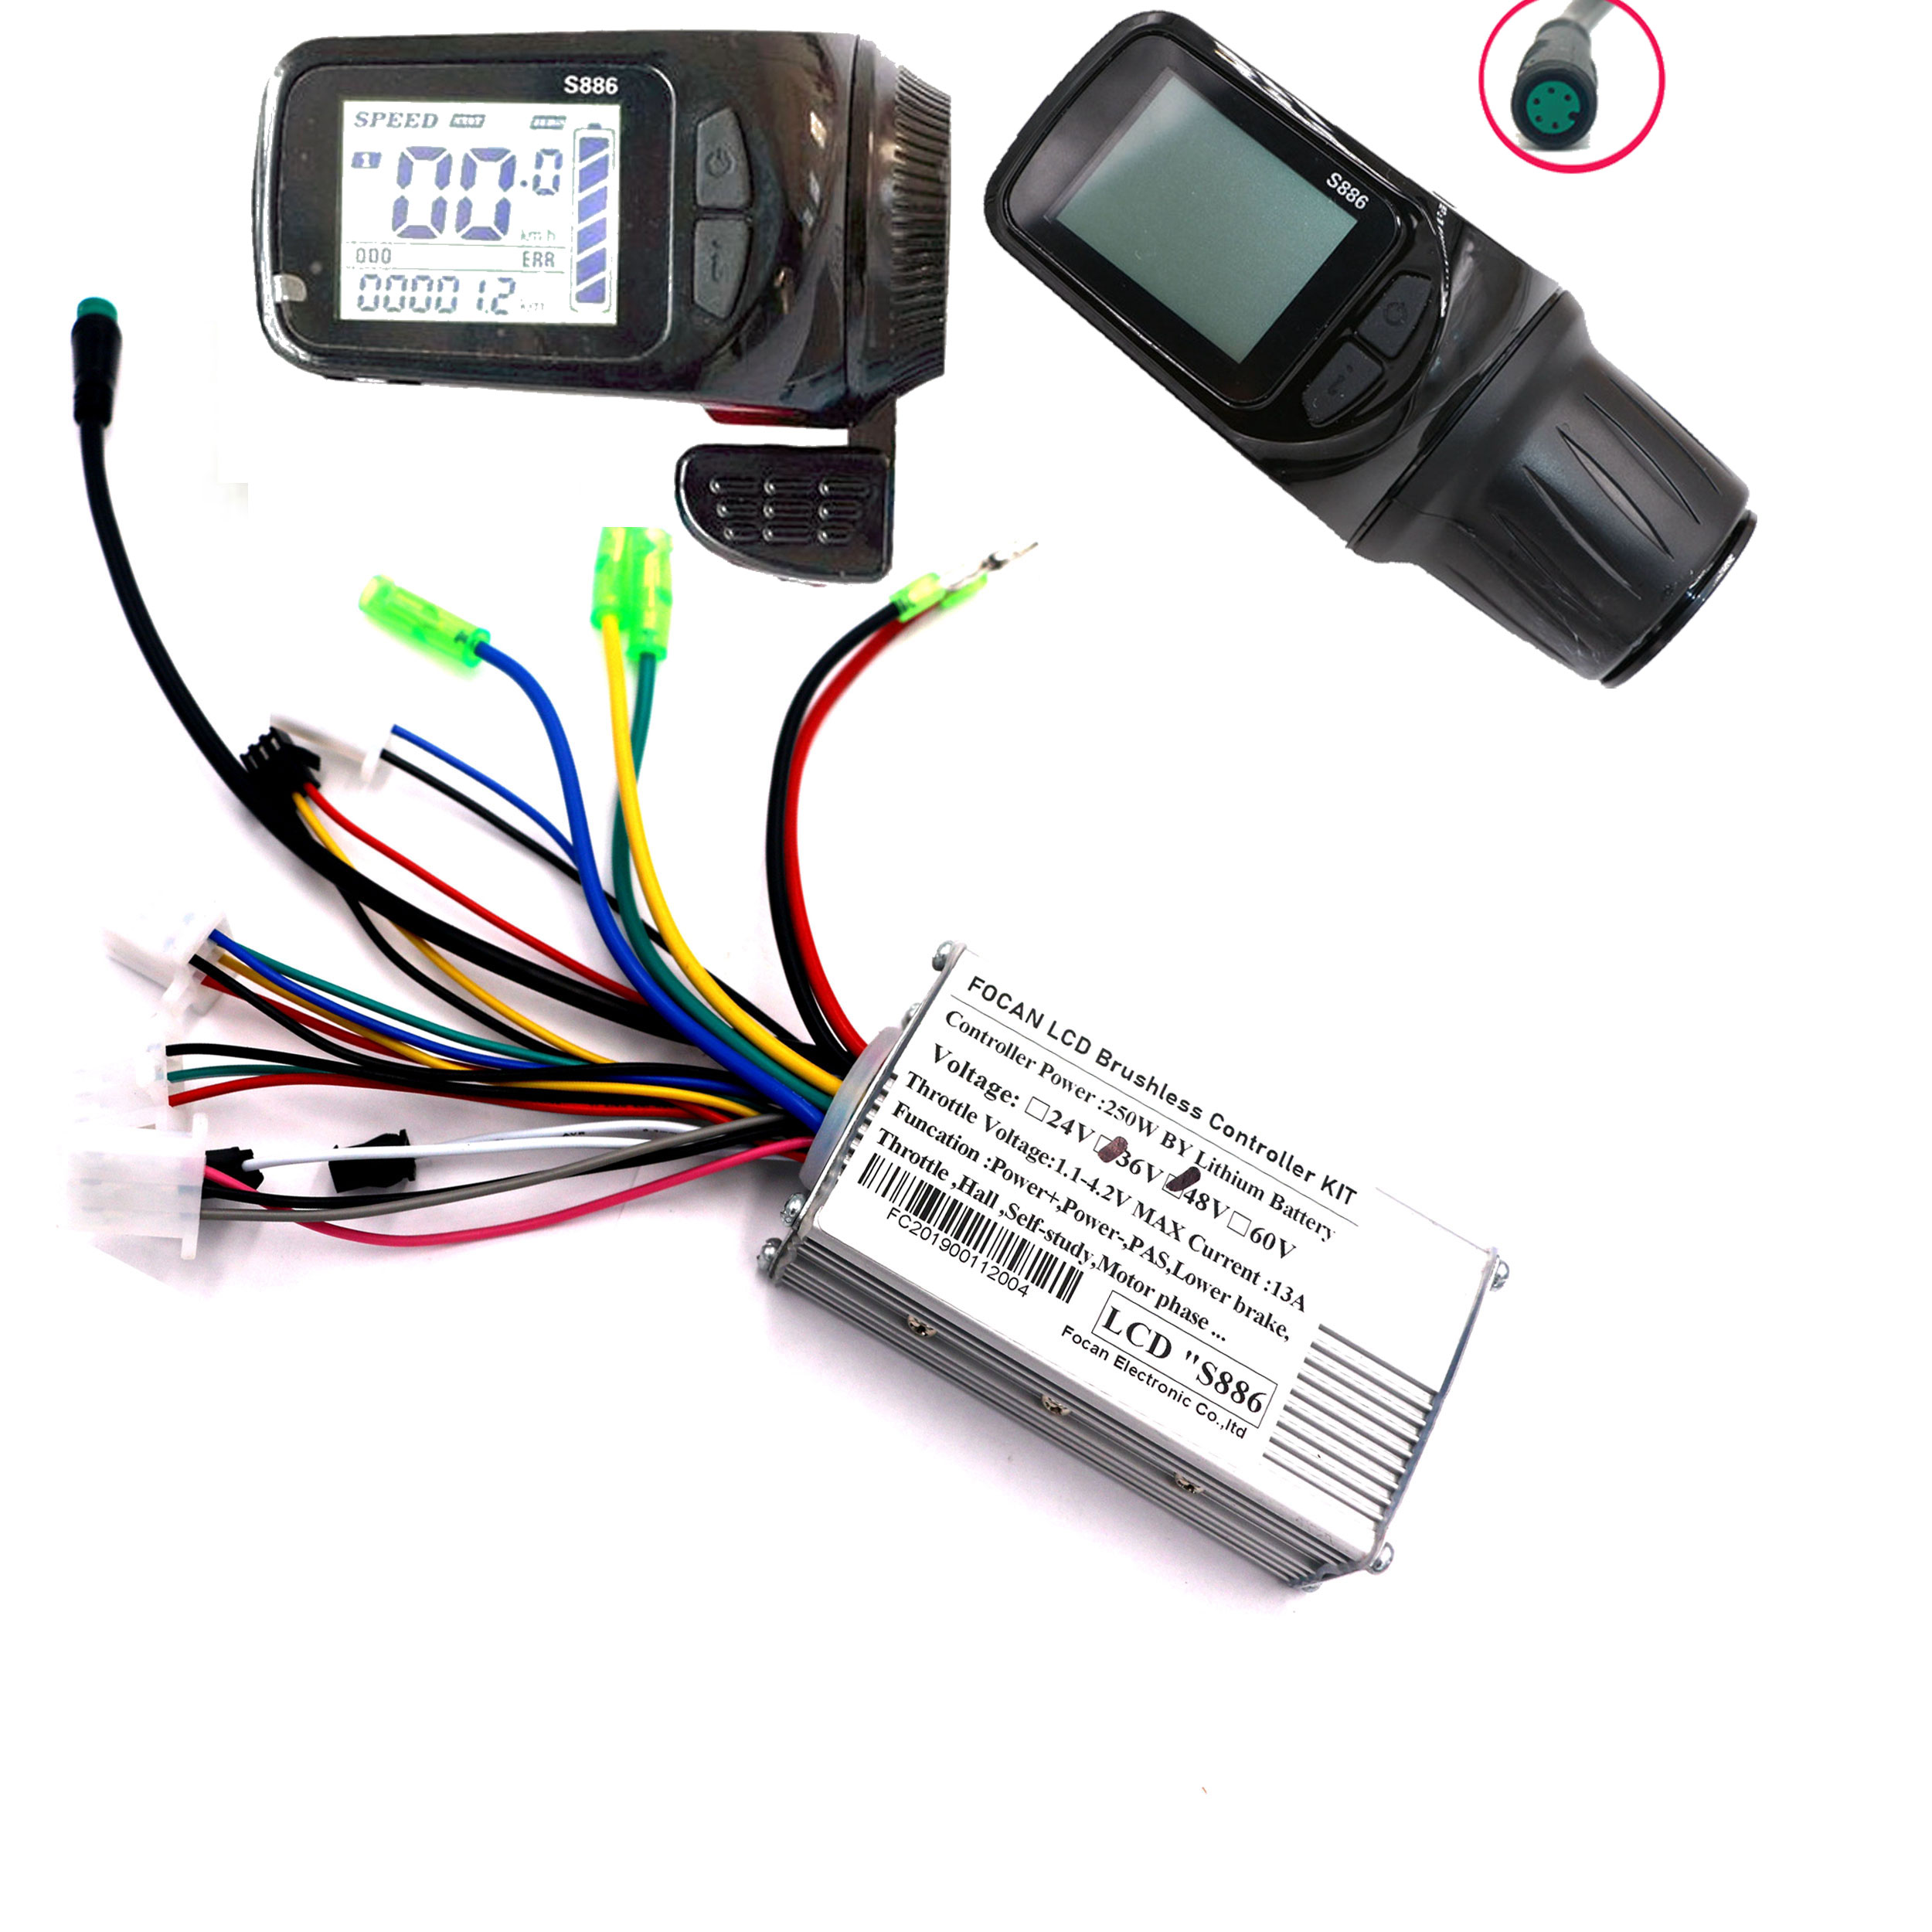 FOCAN 36V 48V 250W Electric Waterproof Bicycle Brushless Controller Kit Scooter Motor Controller With LCD Display Panel Control